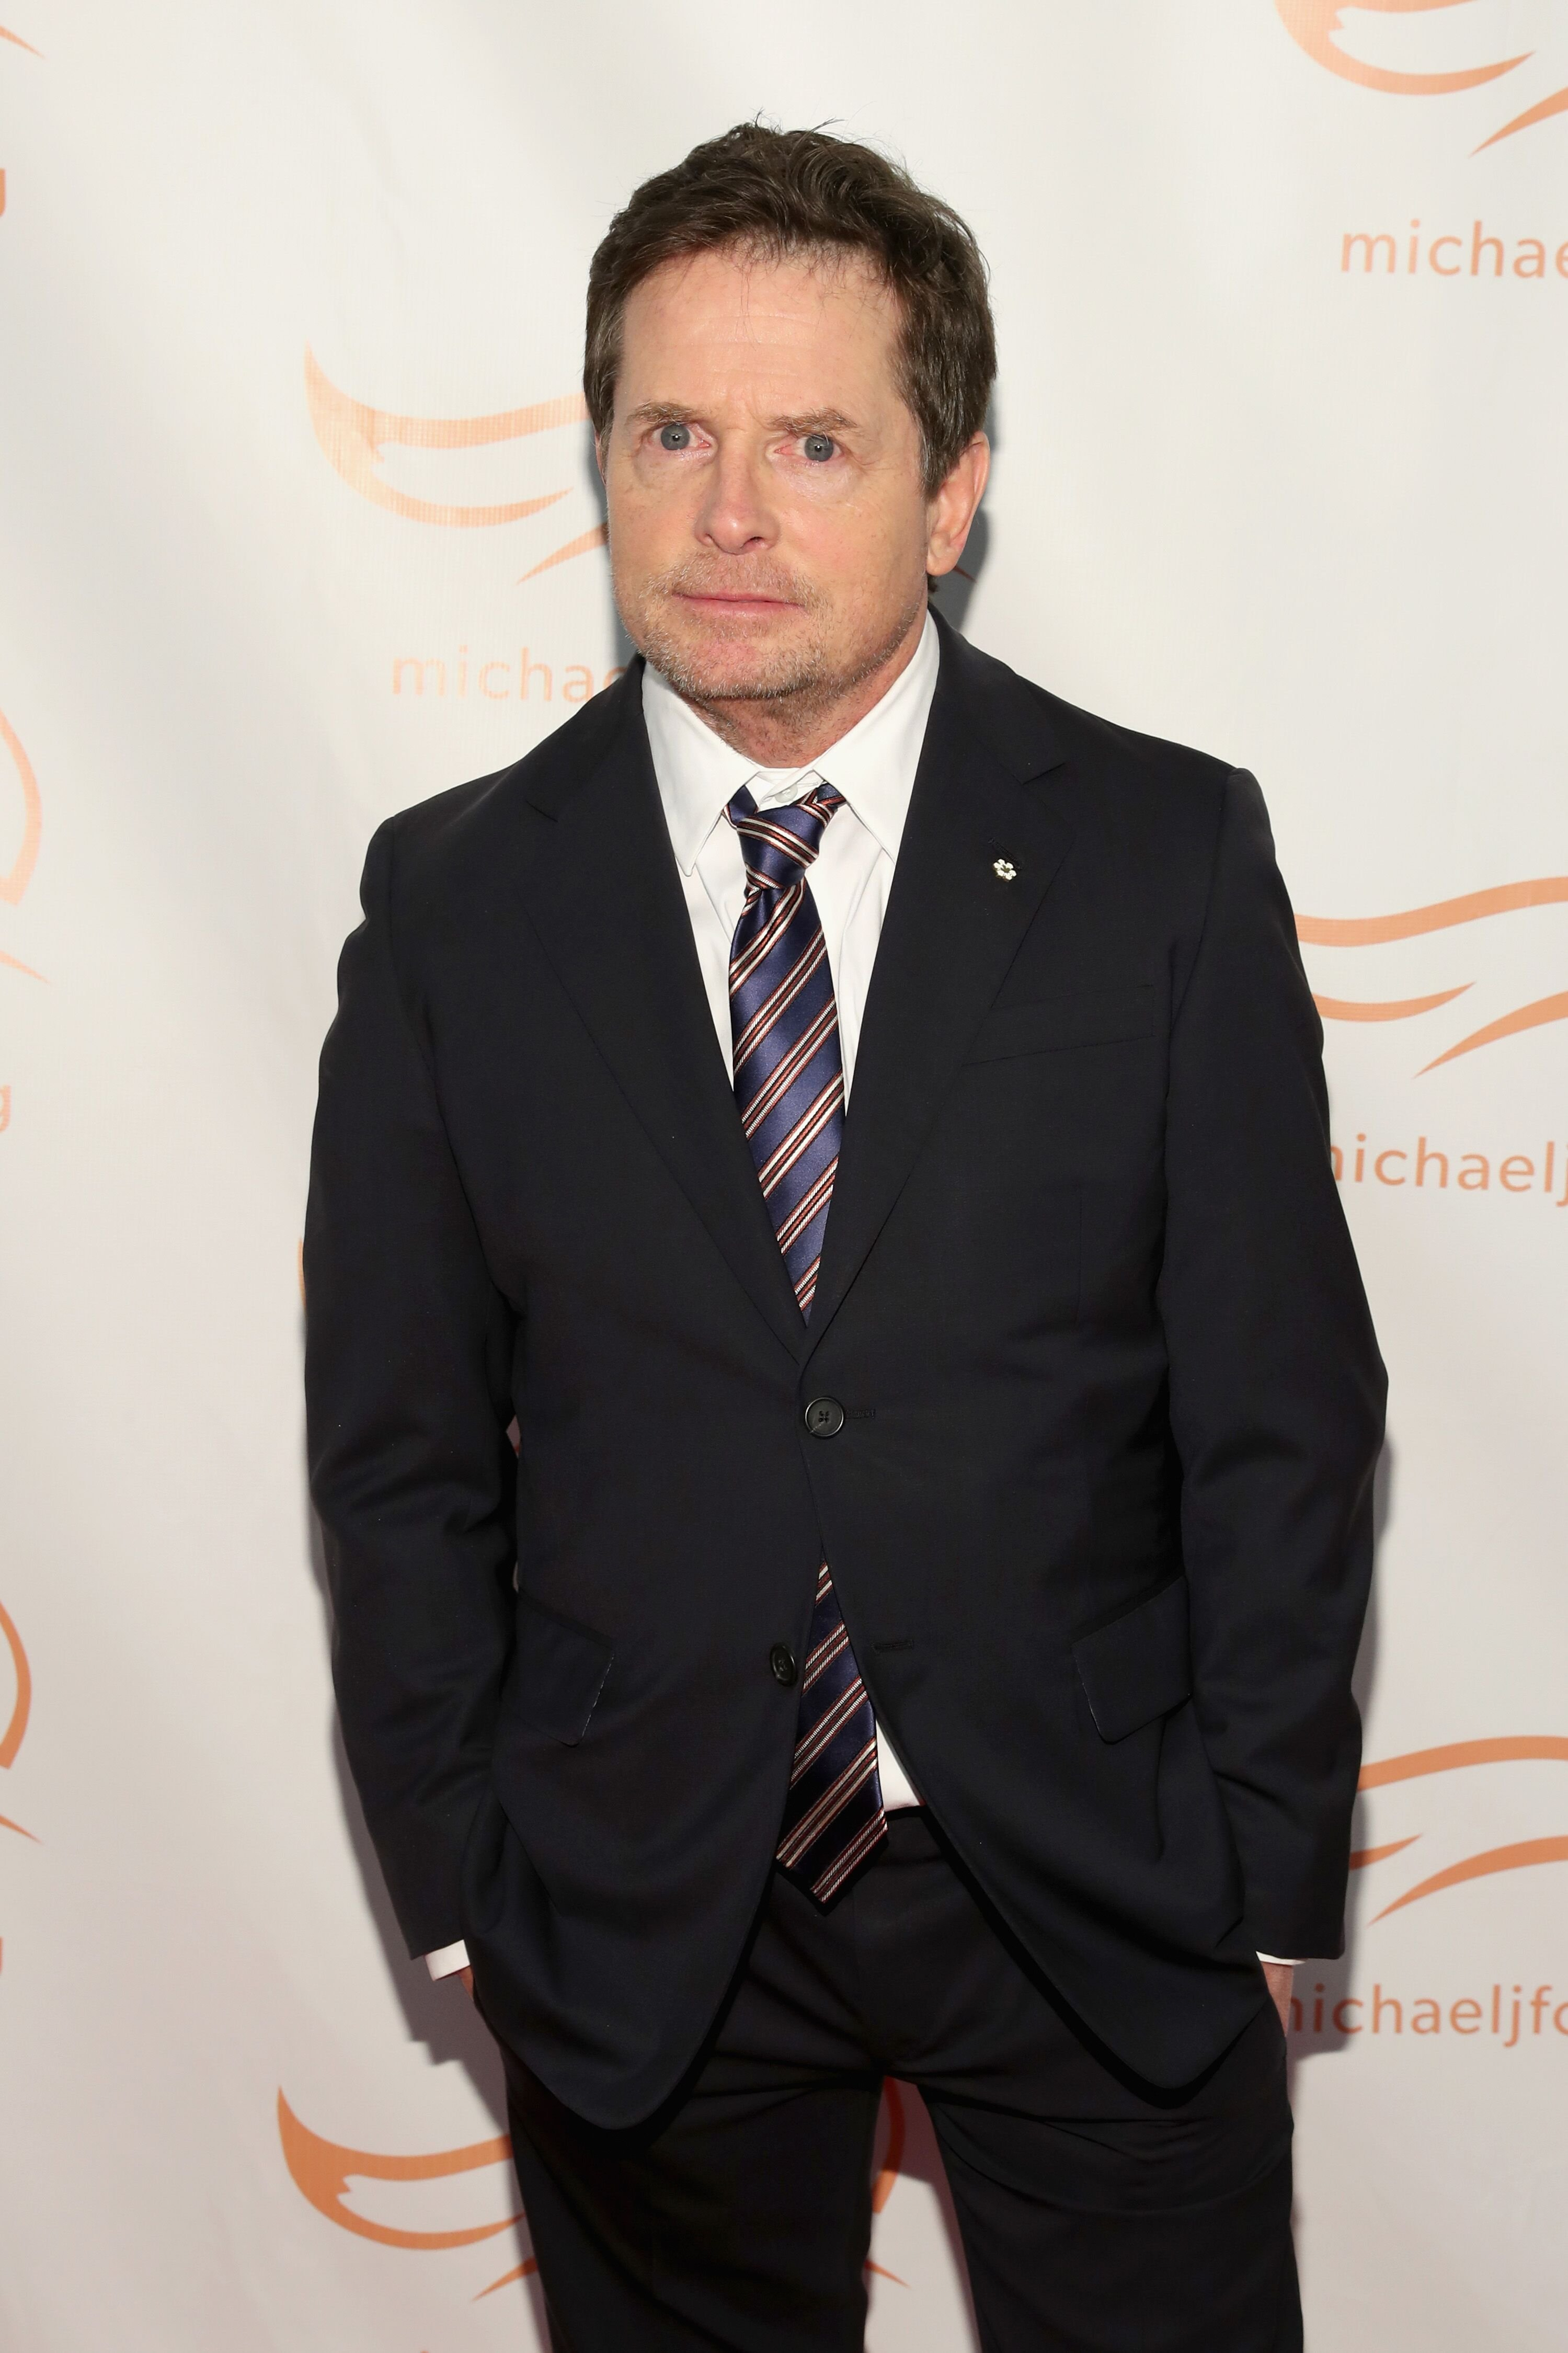 Michael J. Fox on the red carpet of A Funny Thing Happened On The Way To Cure Parkinson's benefitting The Michael J. Fox Foundation at the Hilton New York on November 10, 2018 | Photo: Getty Images